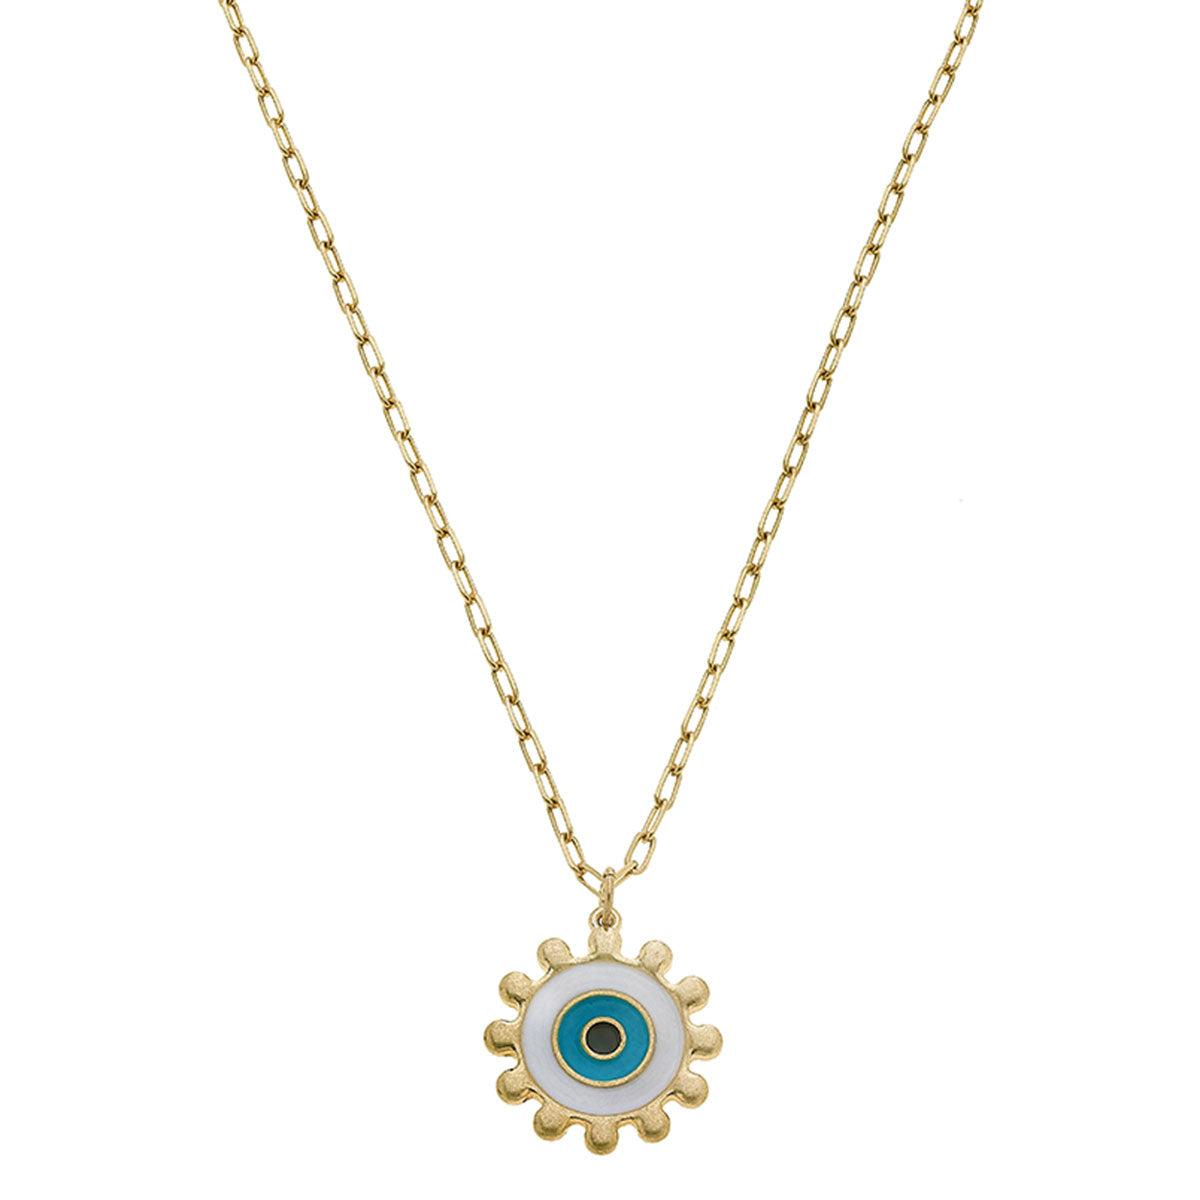 Nia Evil Eye Talisman Necklace in Aqua & White Enamel